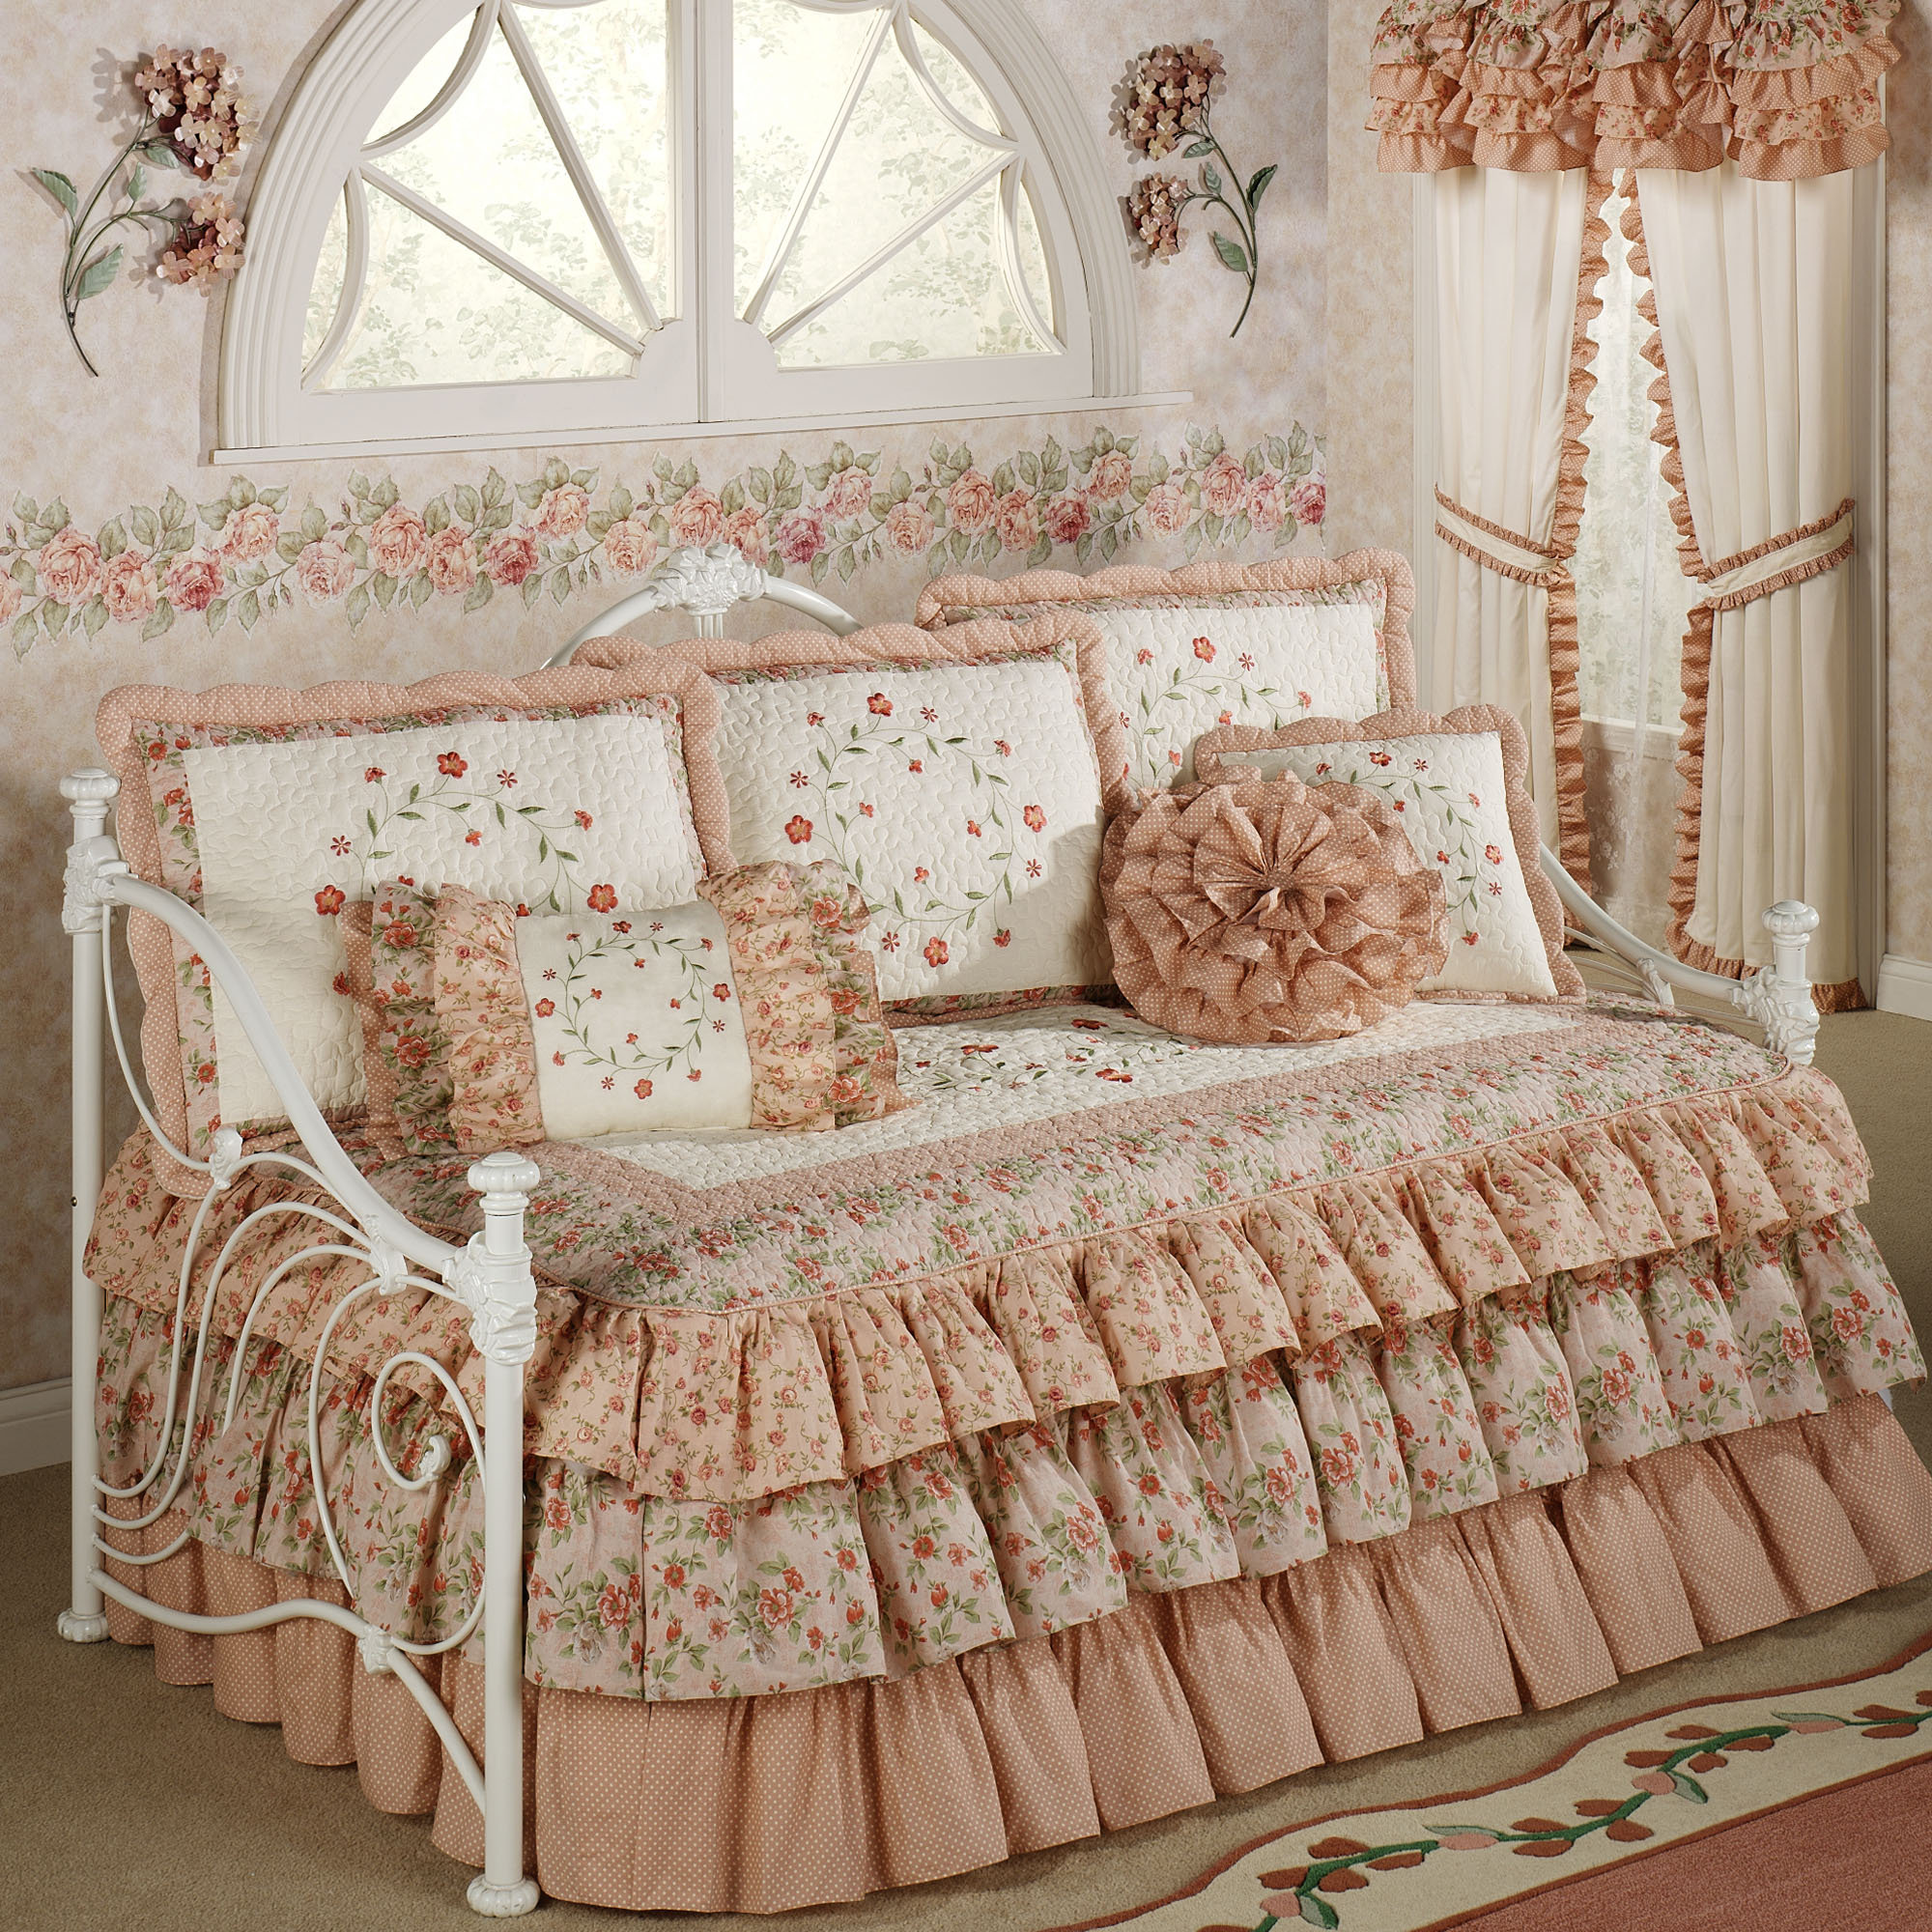 Pretty Bed Covers Daybed Bedding Sets Sears Interior And Exterior Ideas